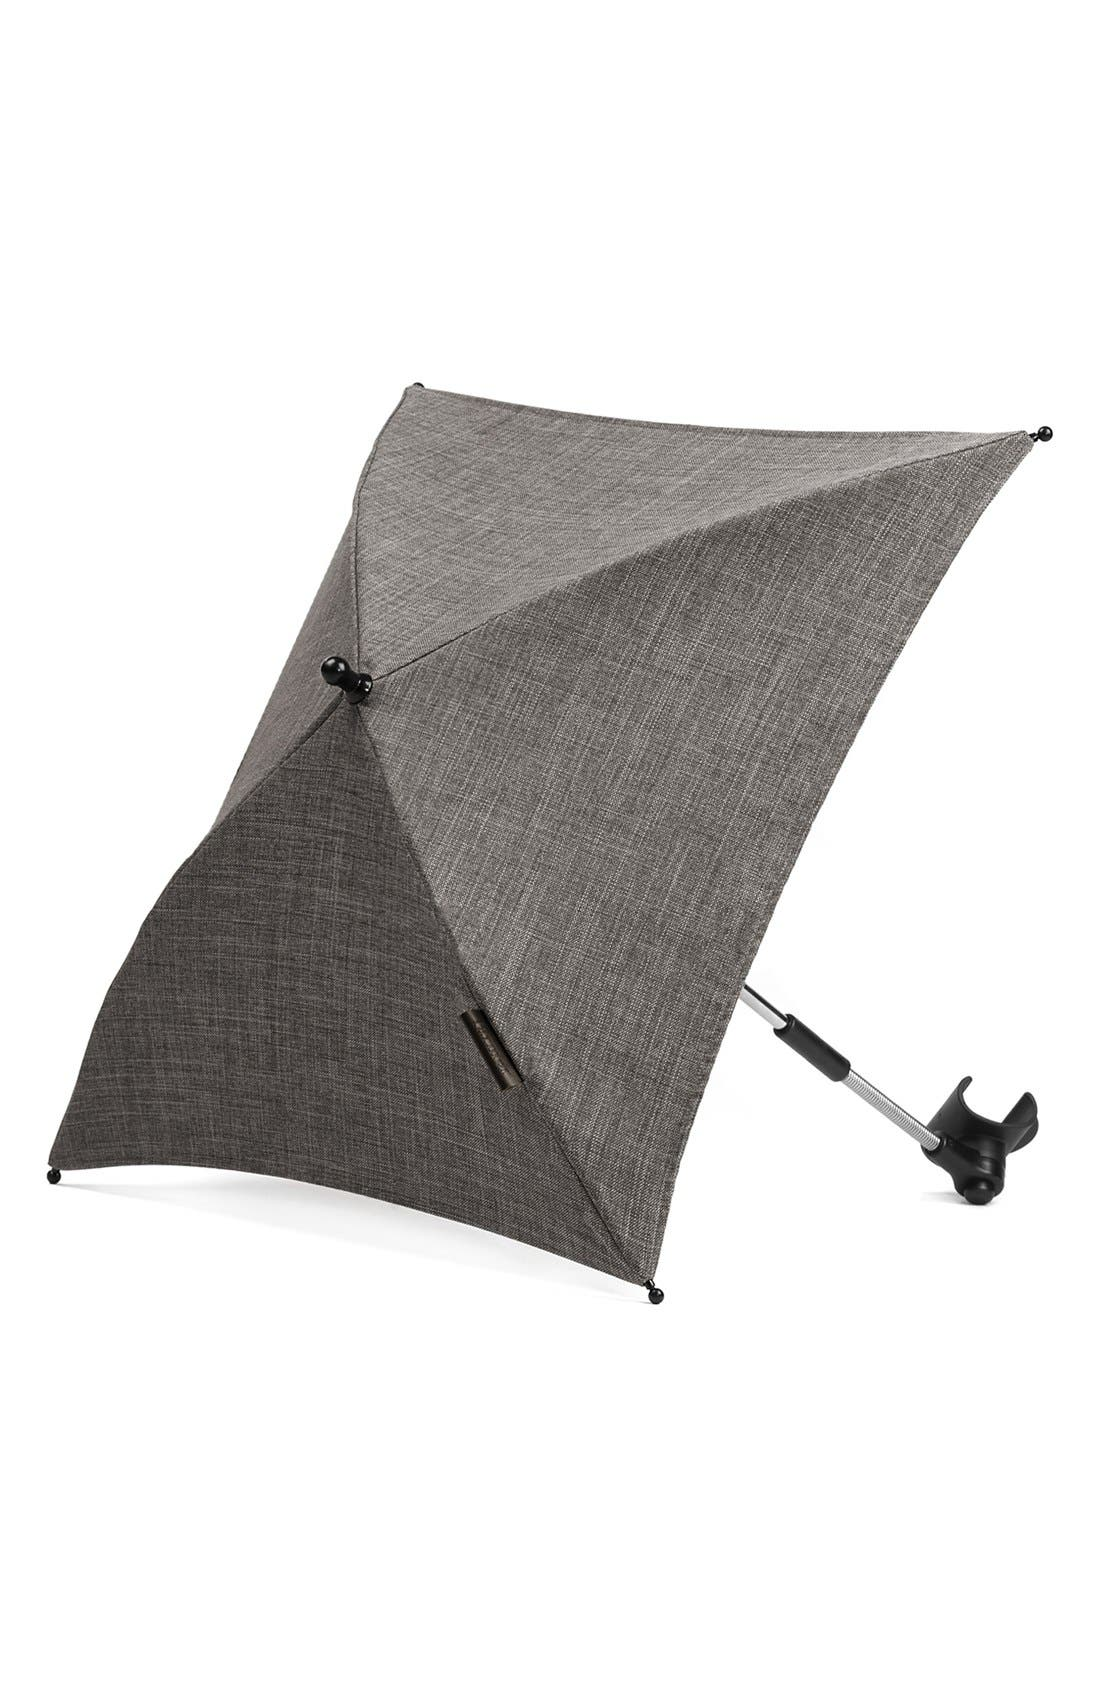 'Igo - Farmer Earth' Stroller Umbrella,                         Main,                         color, Brown